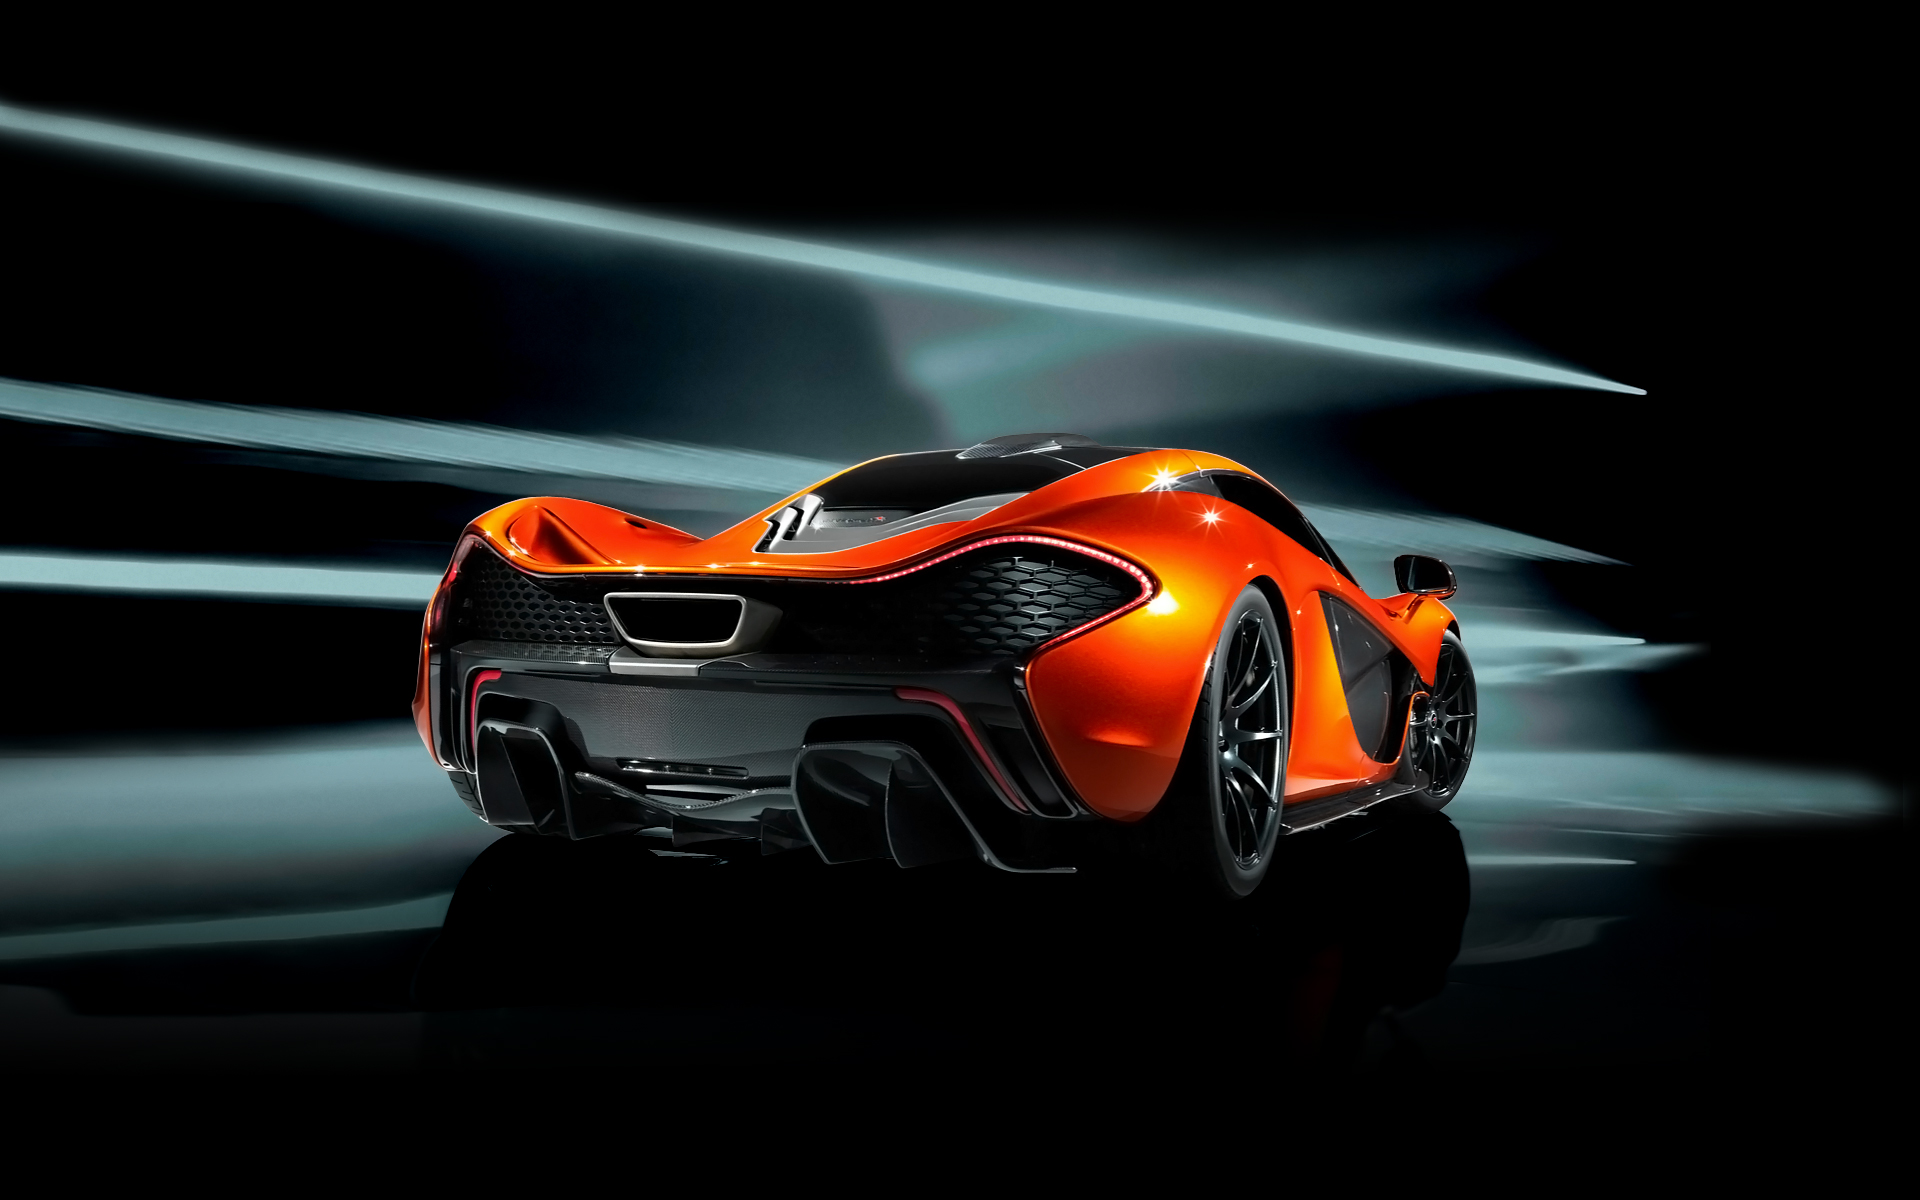 Daily Wallpaper: Exclusive: The All New McLaren P1 | I ...